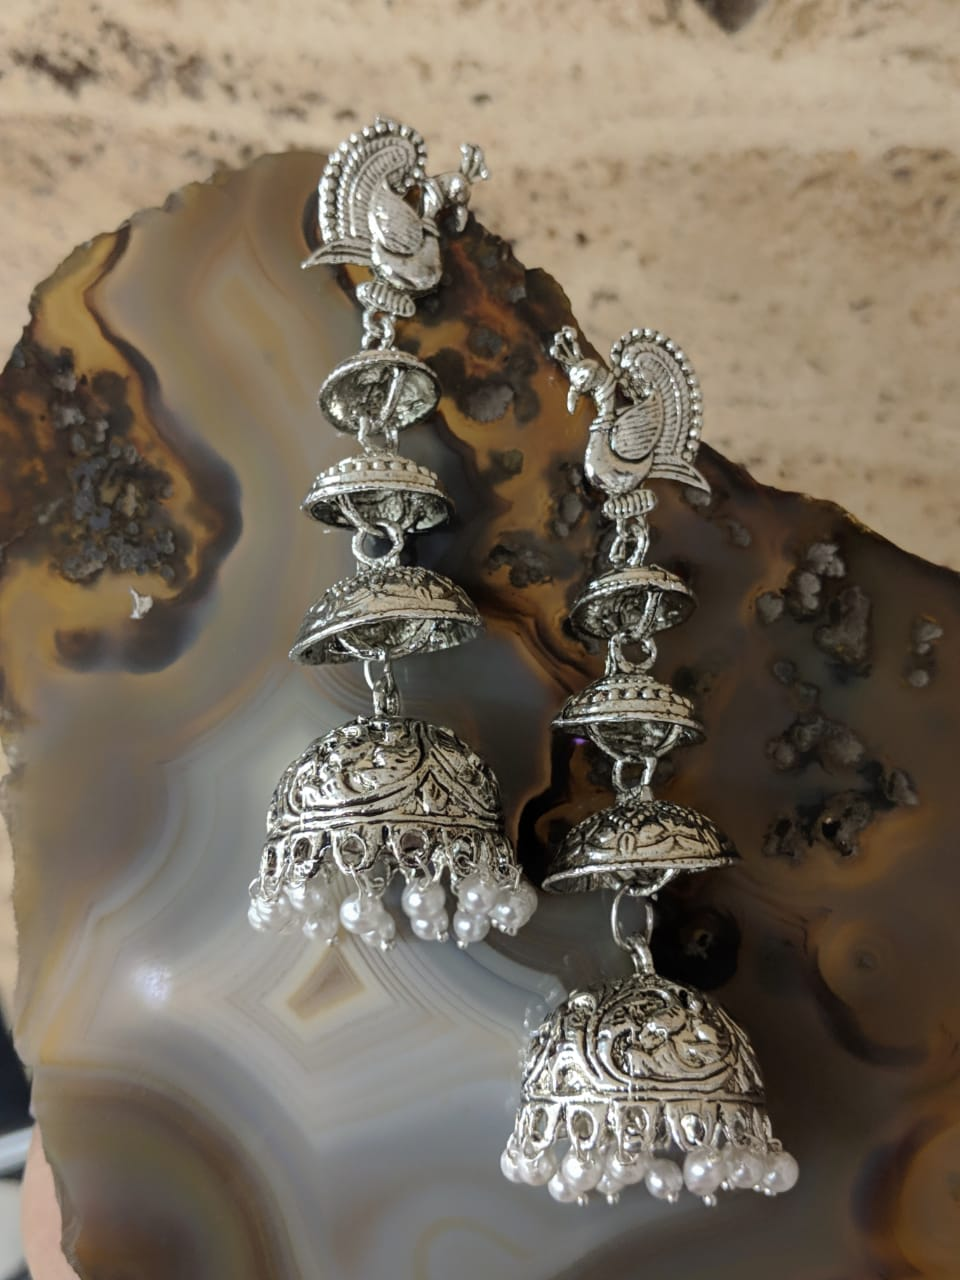 Digital Jhumki Earrings for Women Designer Oxidised Silver Earrings Afghani Tribal Bohemian Oxidised German Silver Stylish Party Wear Dangle Drop Earrings Jaipuri Tribal Peacock Antique Jewellery